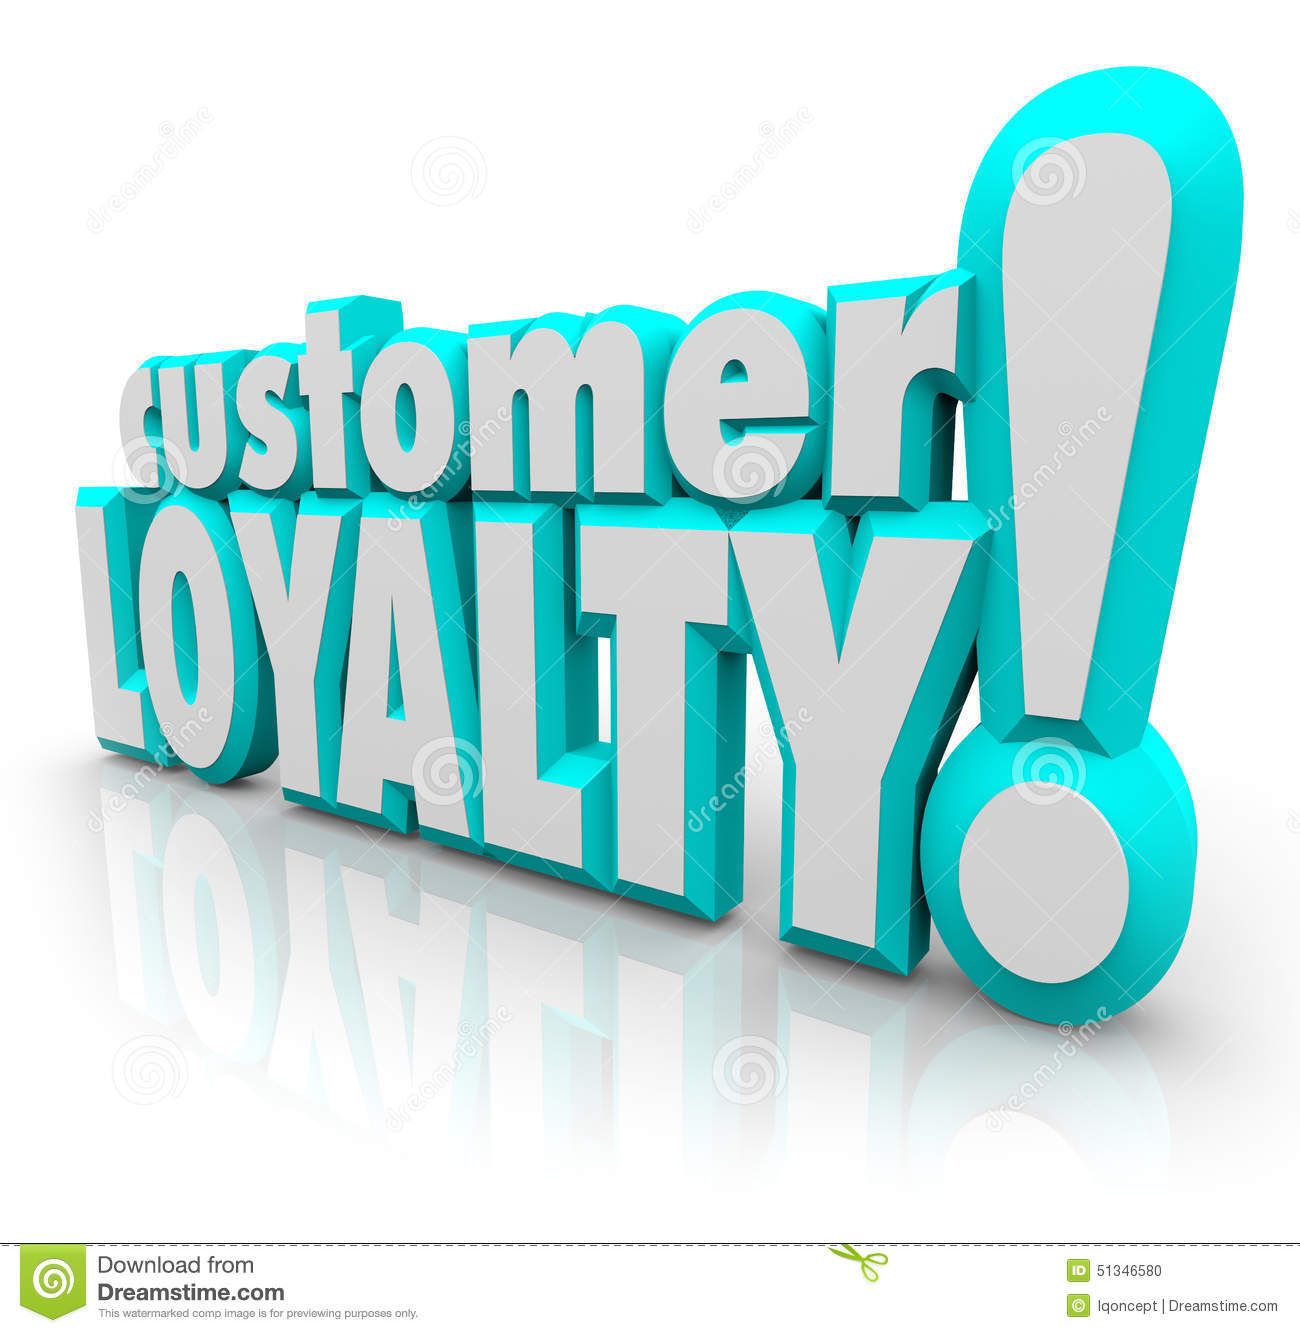 cutomer loyalty 2 customer loyalty program for steinway pianos—they are typically a once in a lifetime purchase and customers who are considering a steinway usually hold the.